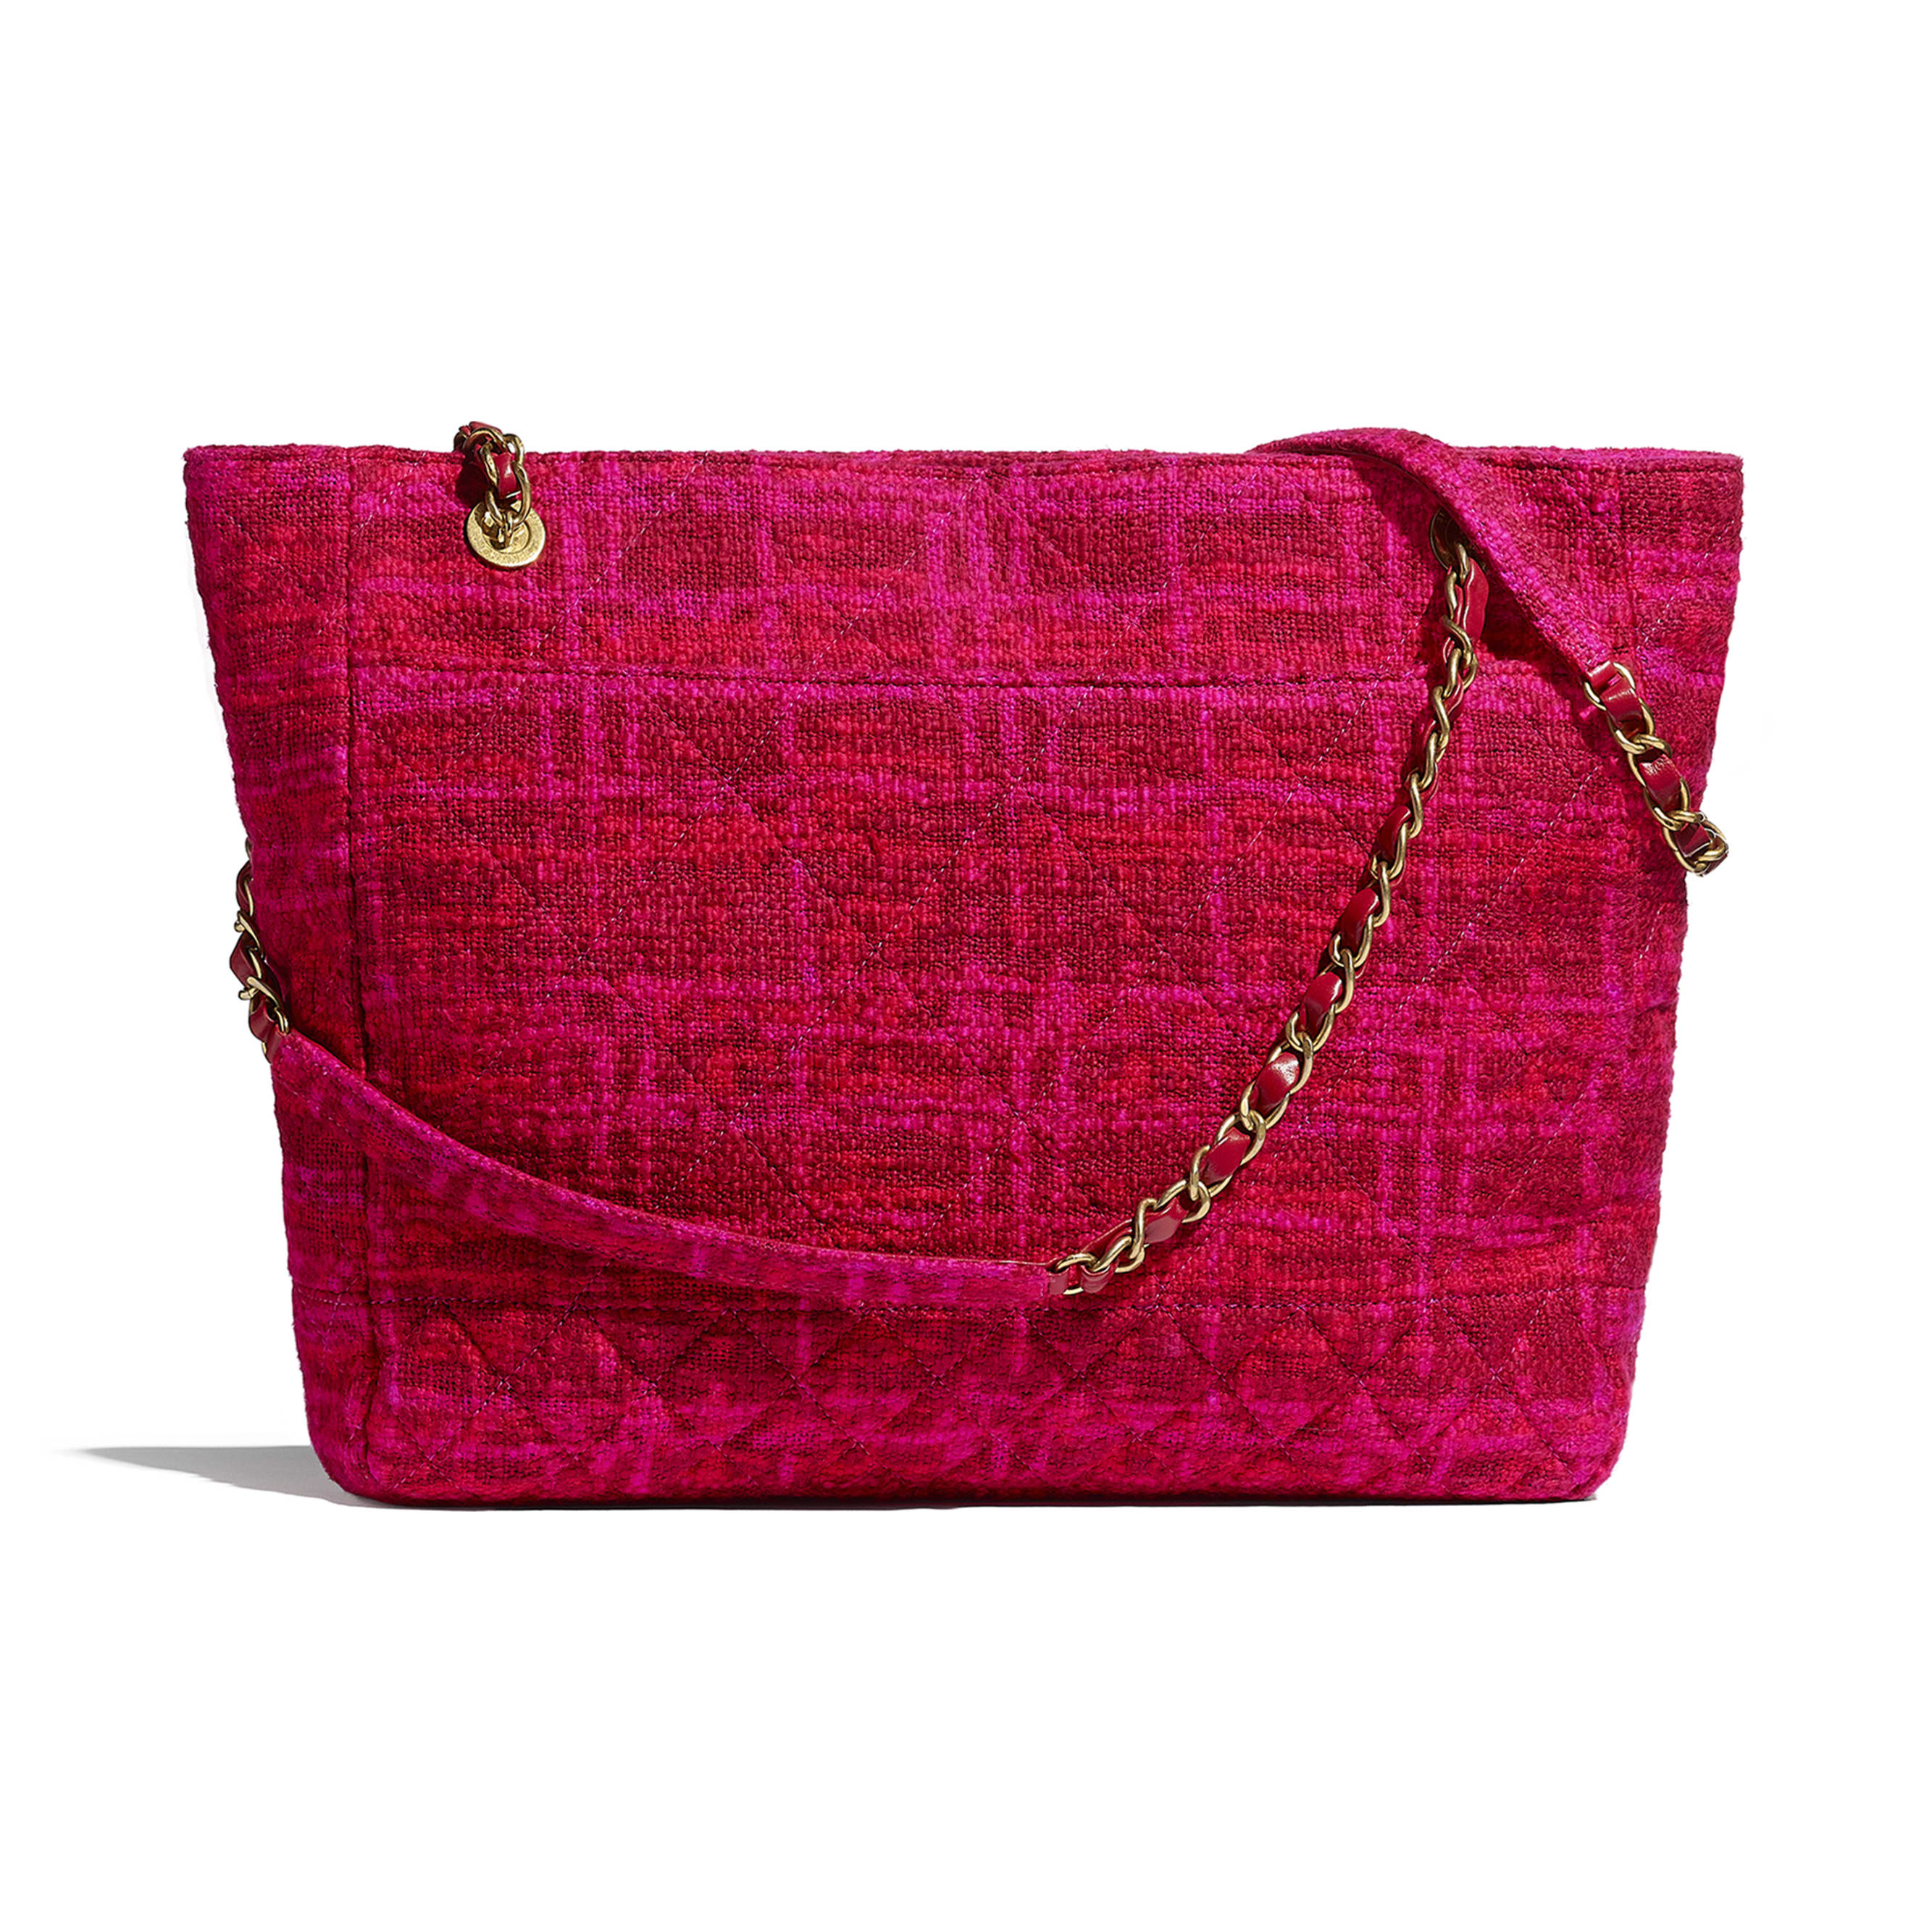 Large Shopping Bag - Fuchsia & Red - Cotton Tweed & Gold-Tone Metal - CHANEL - Alternative view - see standard sized version